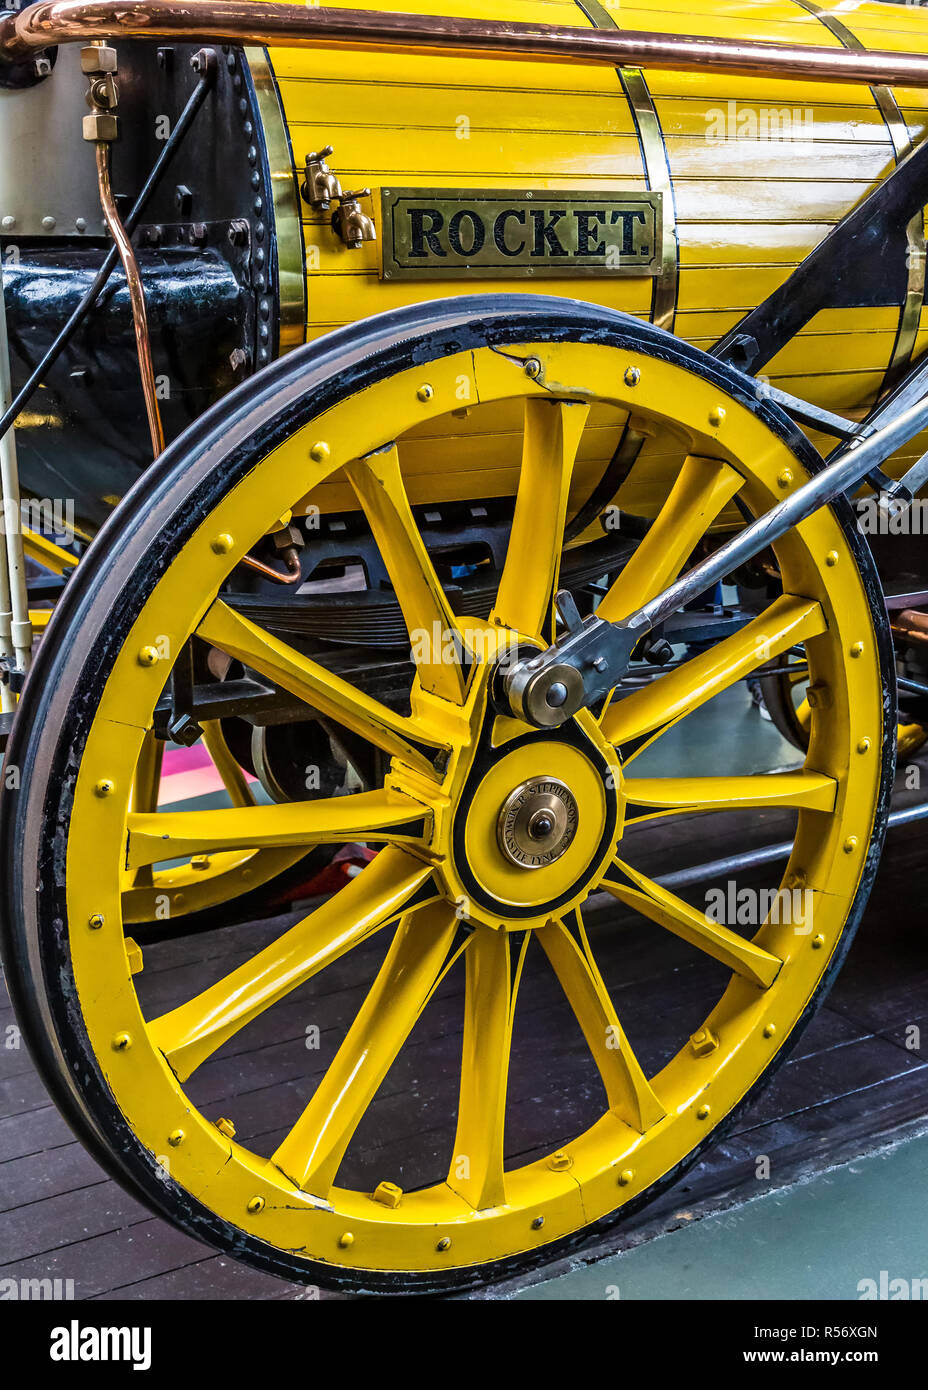 Early days of steam locomotives at National Railway Museum. - Stock Image